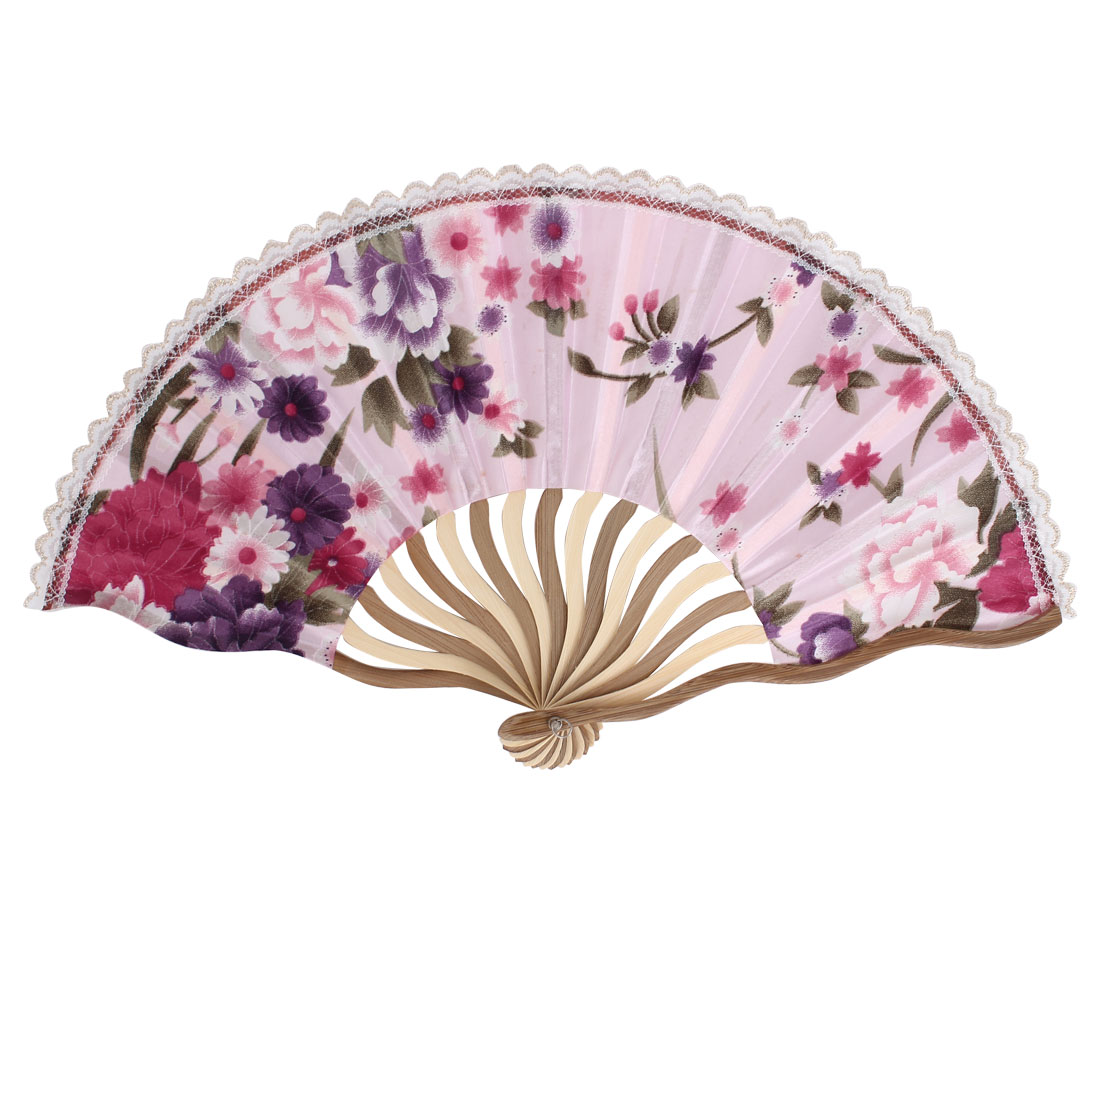 Wood Frame Flowers Pattern Lace Rim Dancing Party Folding Hand Fan Light Pink